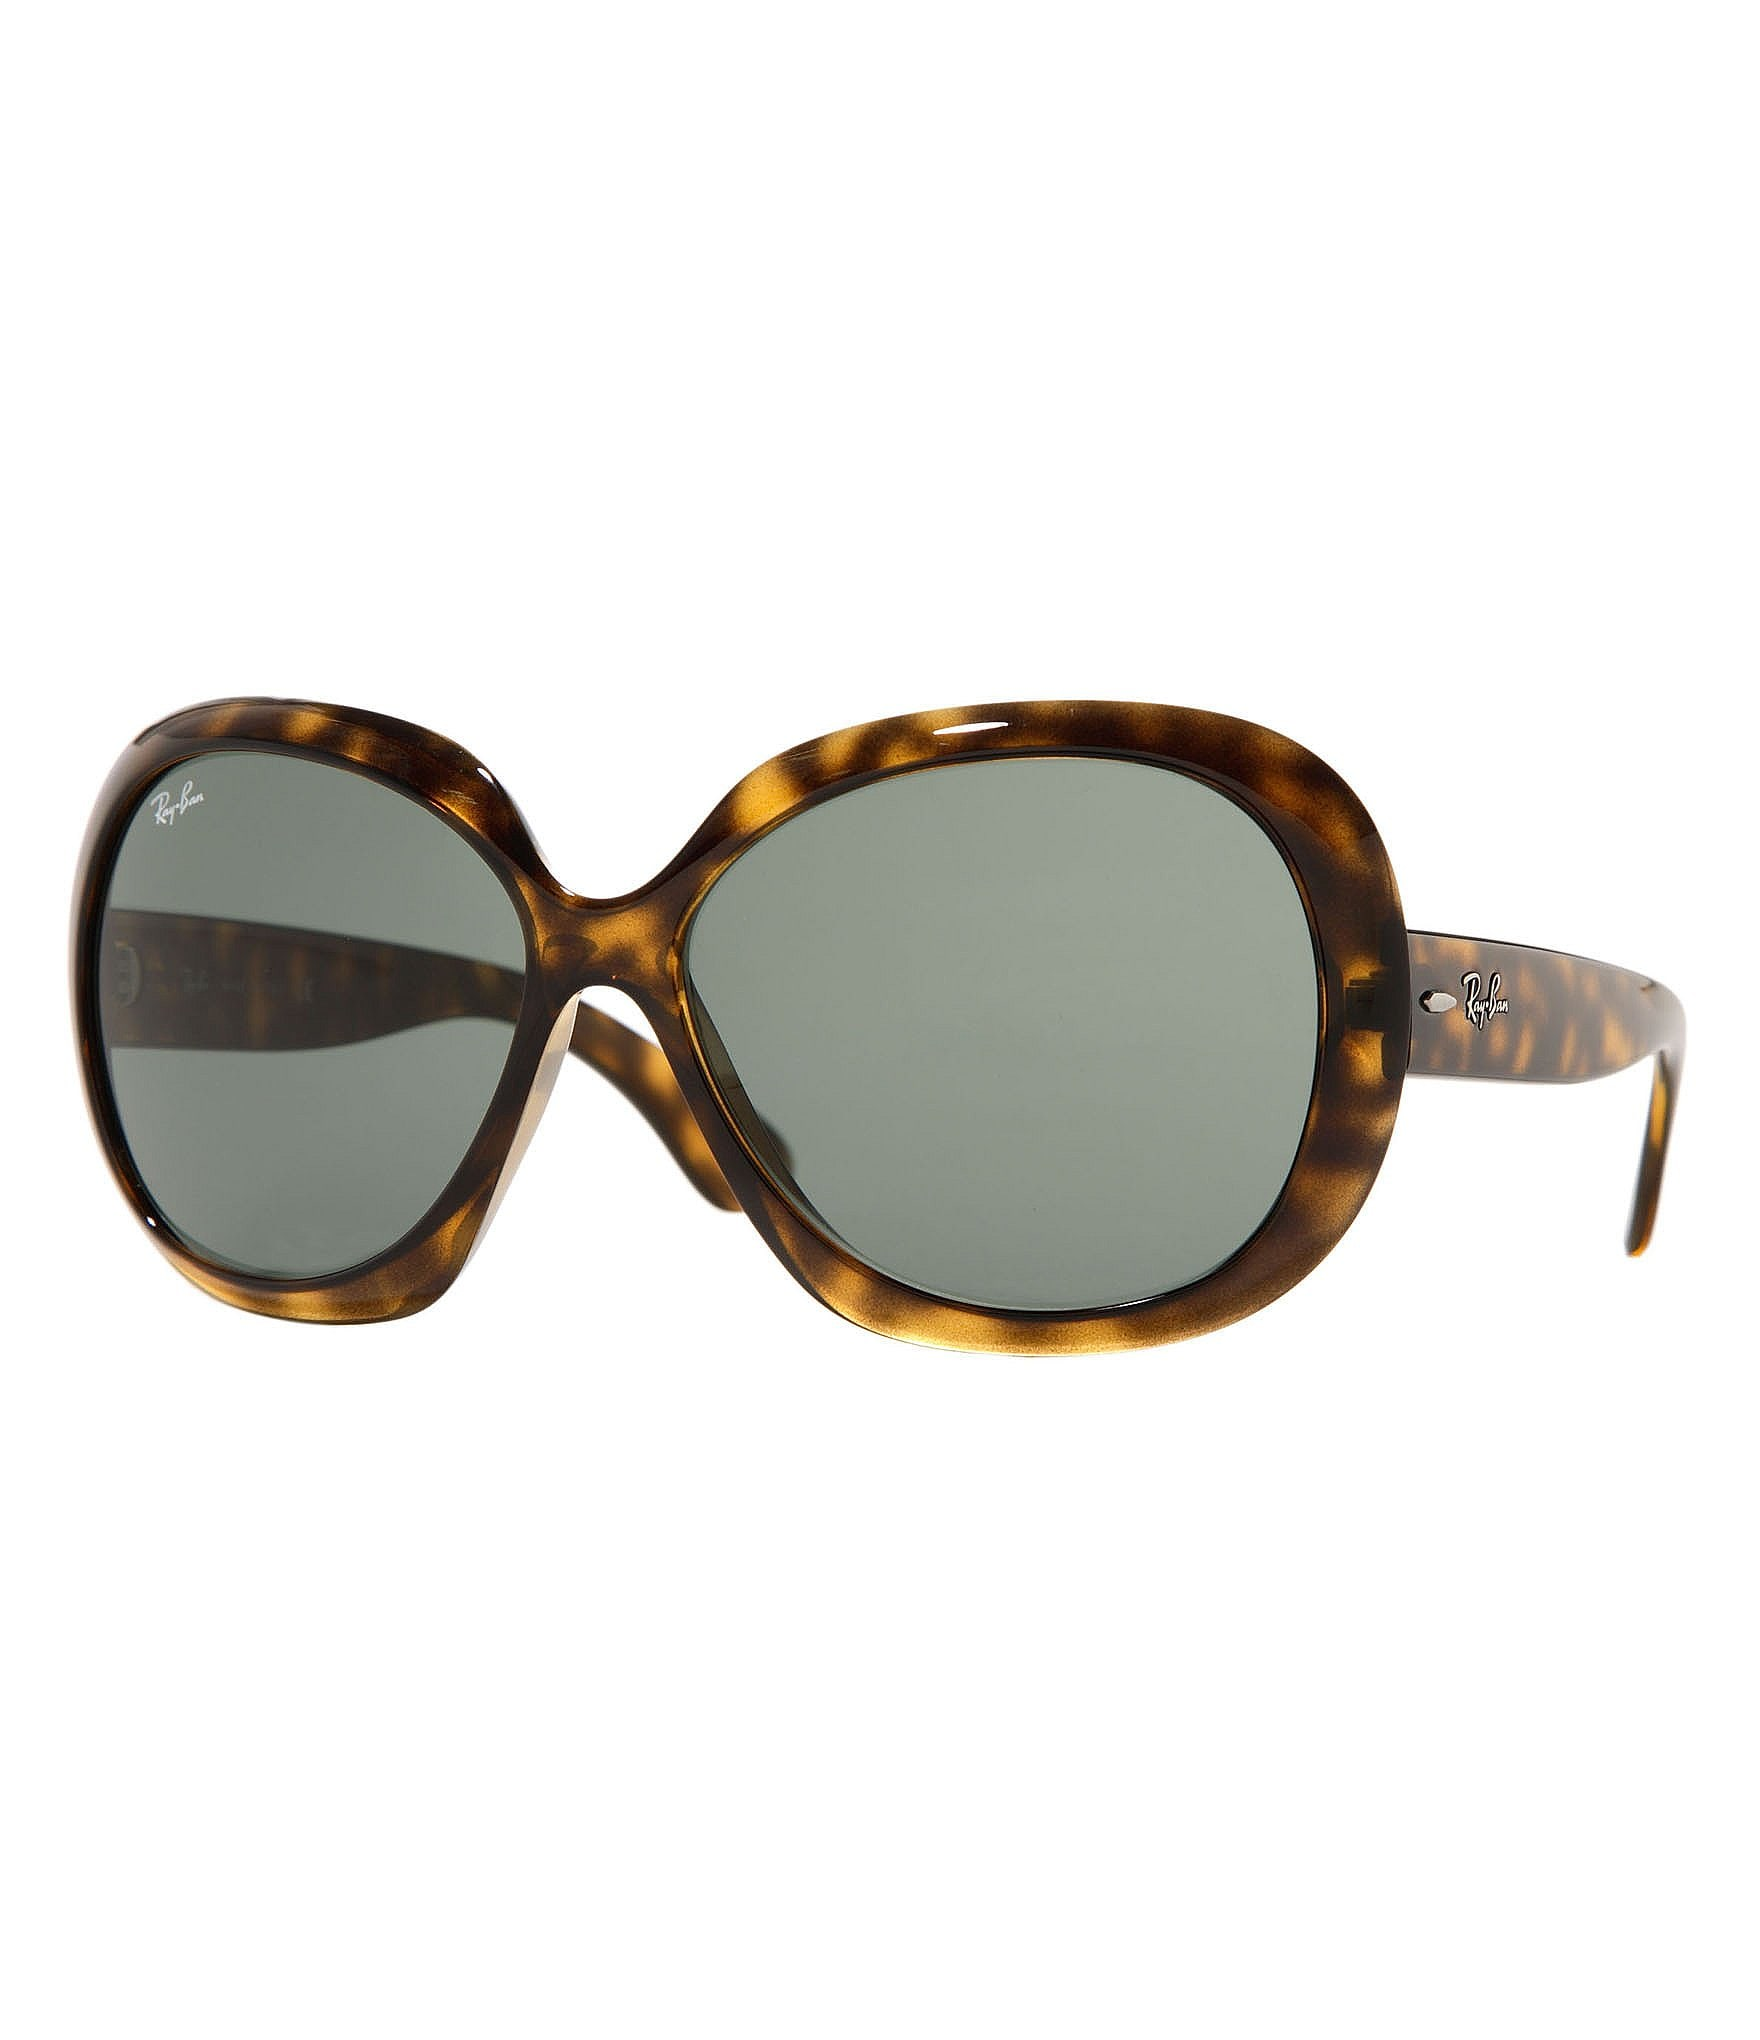 897be0ece3 Ray-Ban Jackie Ohh II Over-Sized Sunglasses